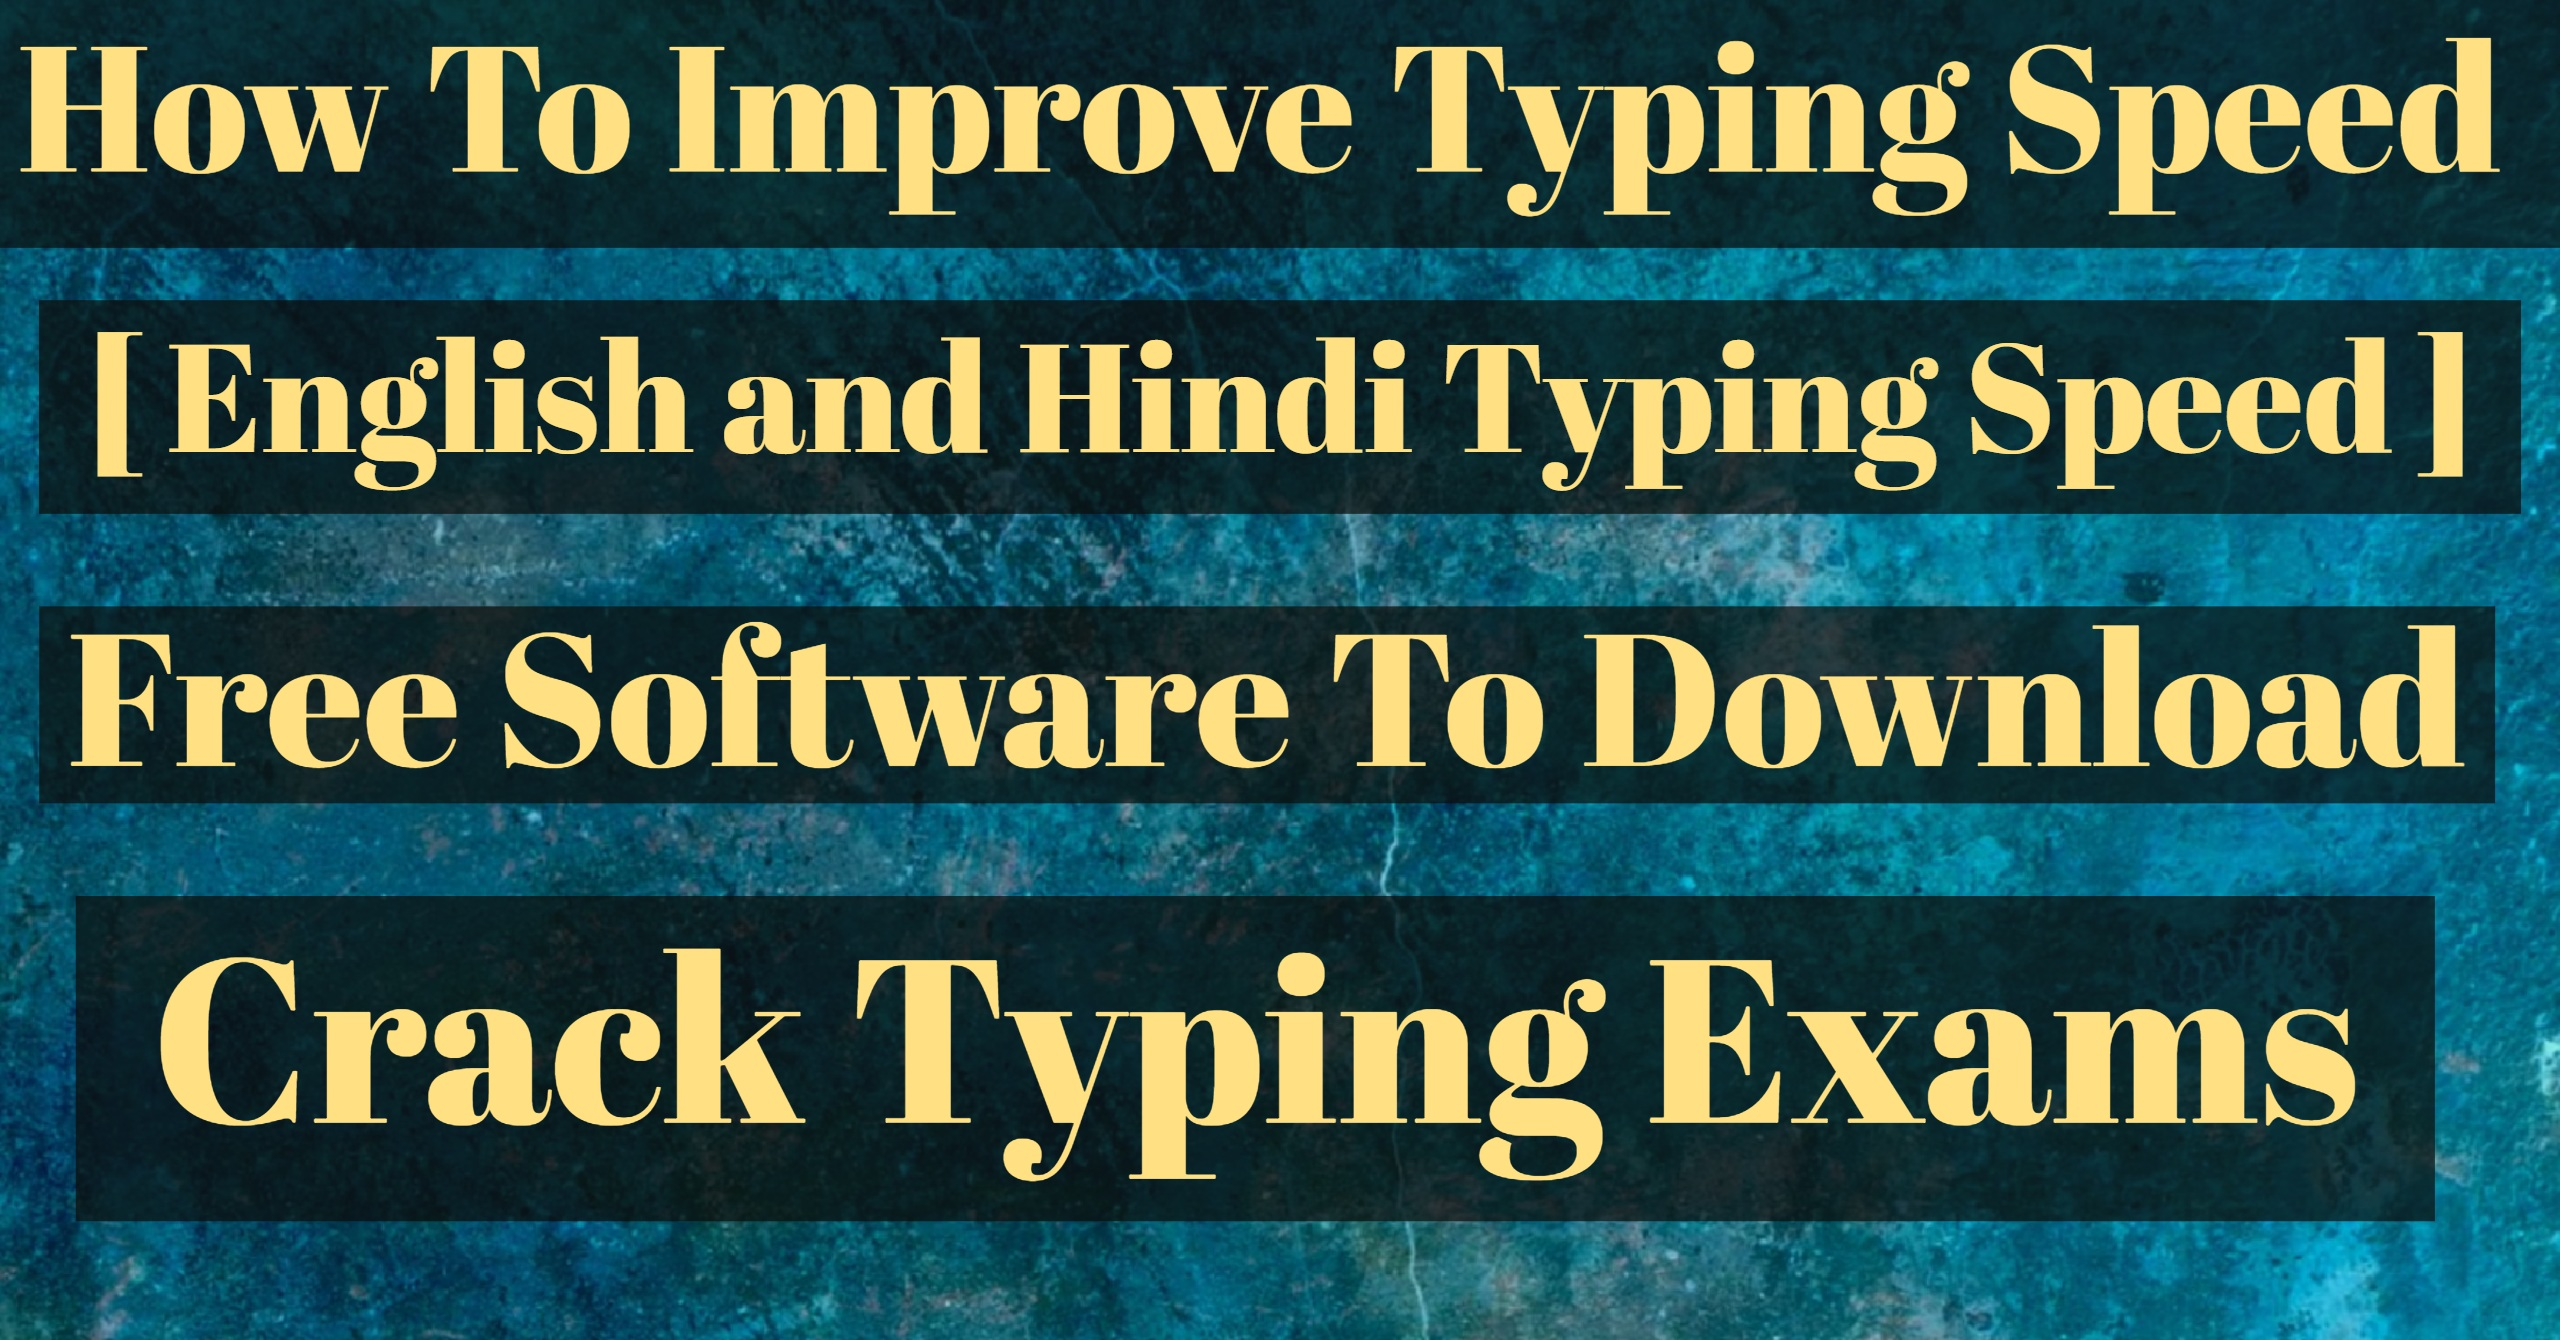 How To Improve Typing Speed [ English and Hindi Typing Speed